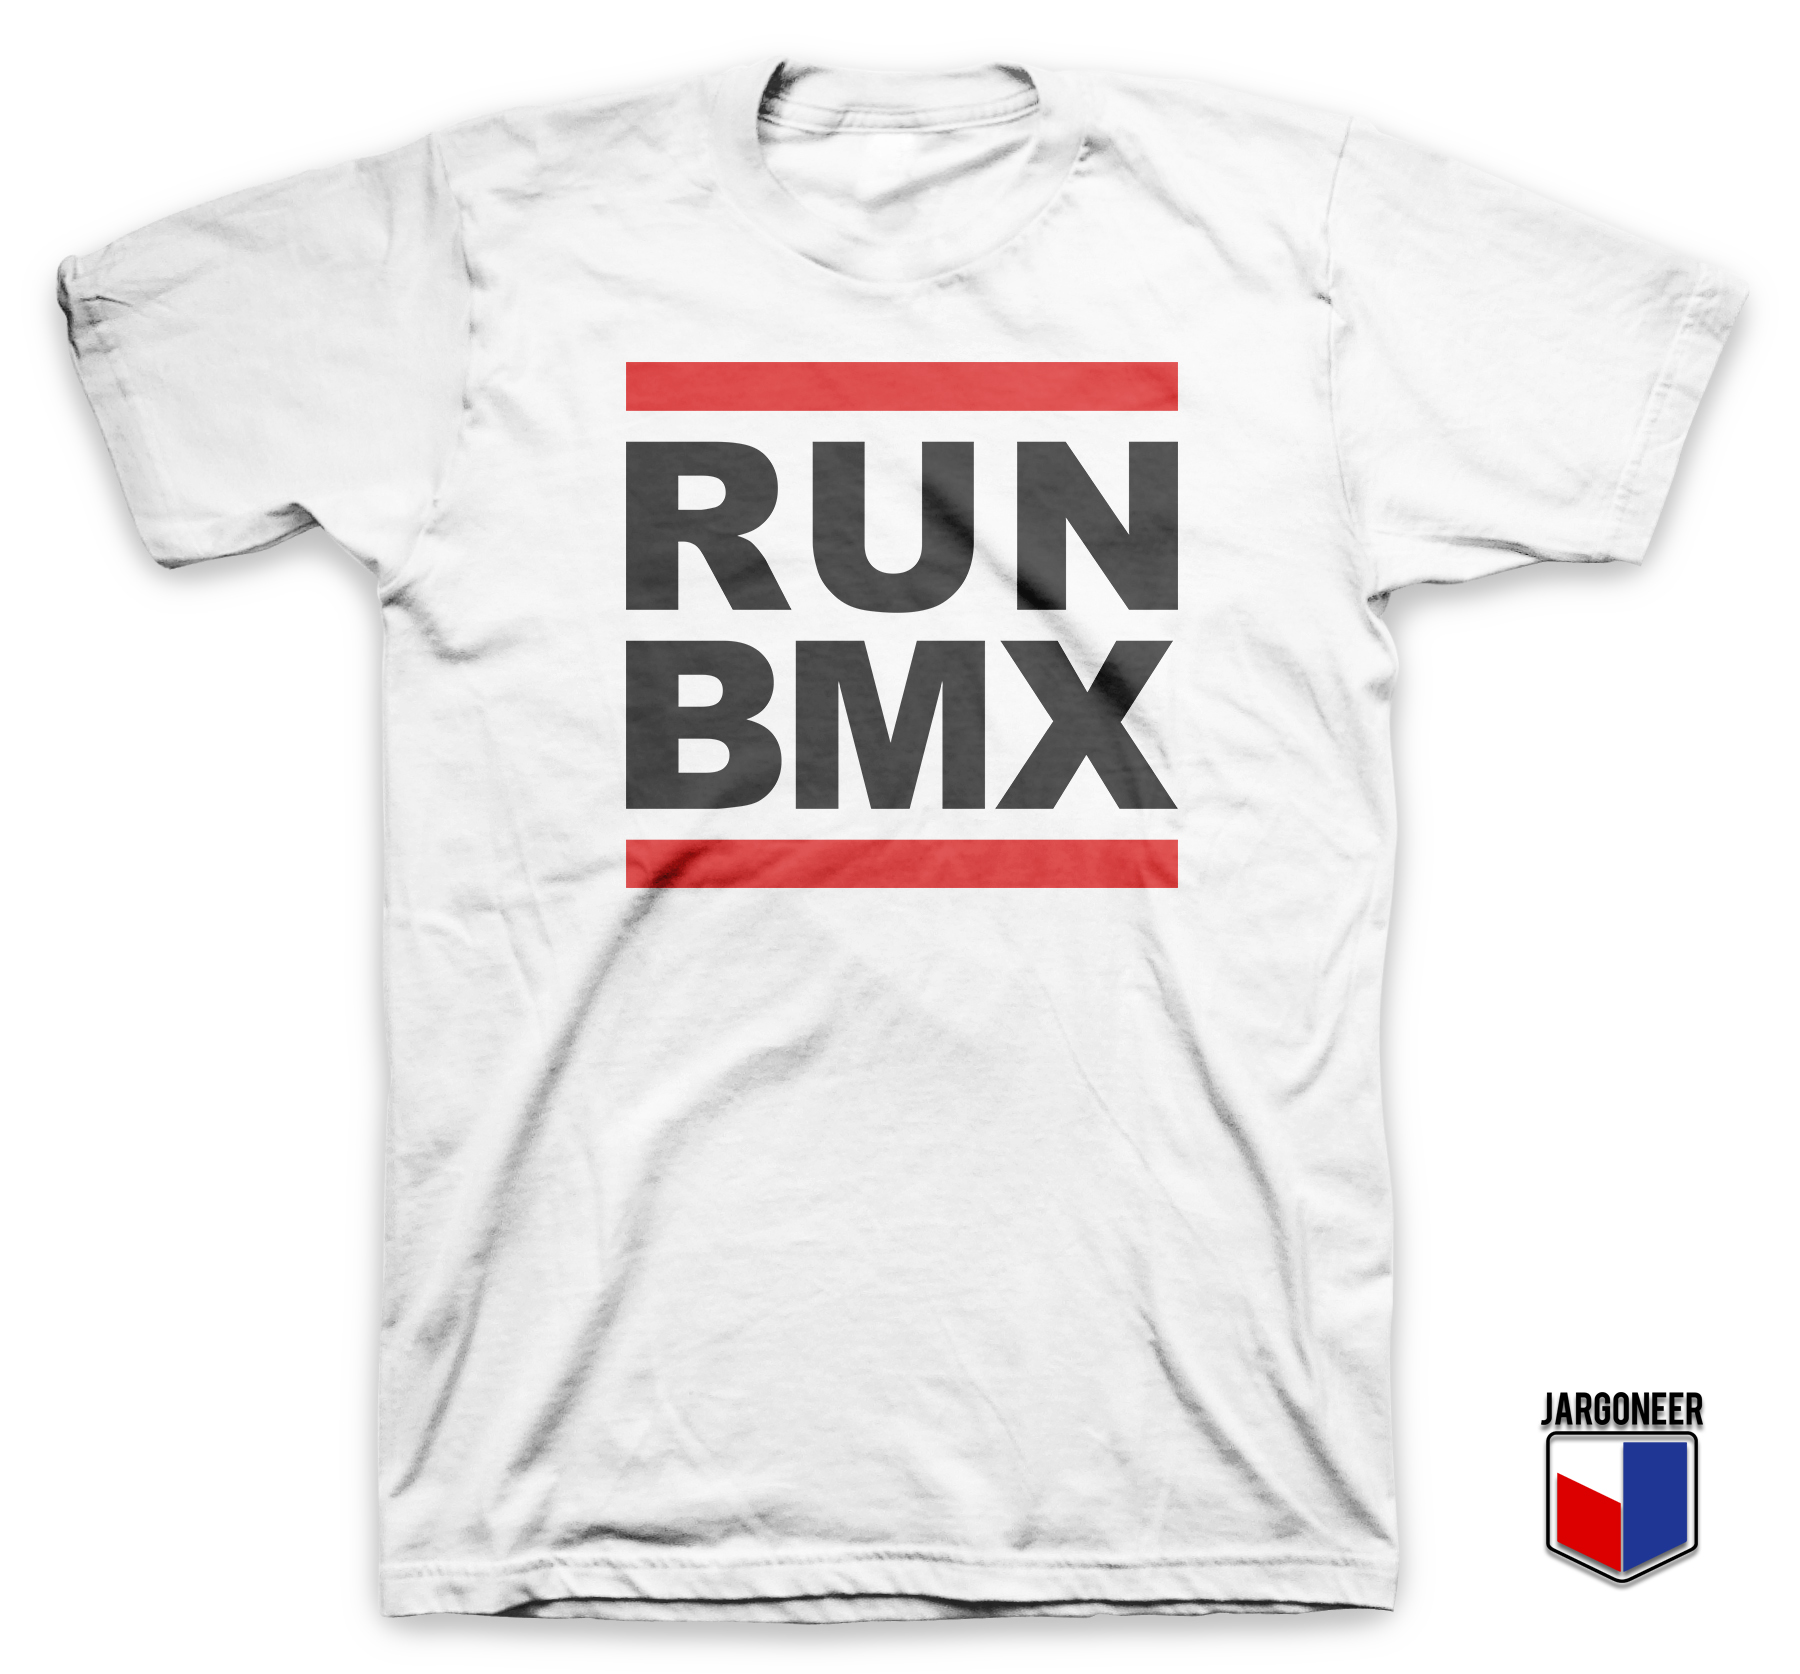 Run Bmx T Shirt Cool Shirt Designs